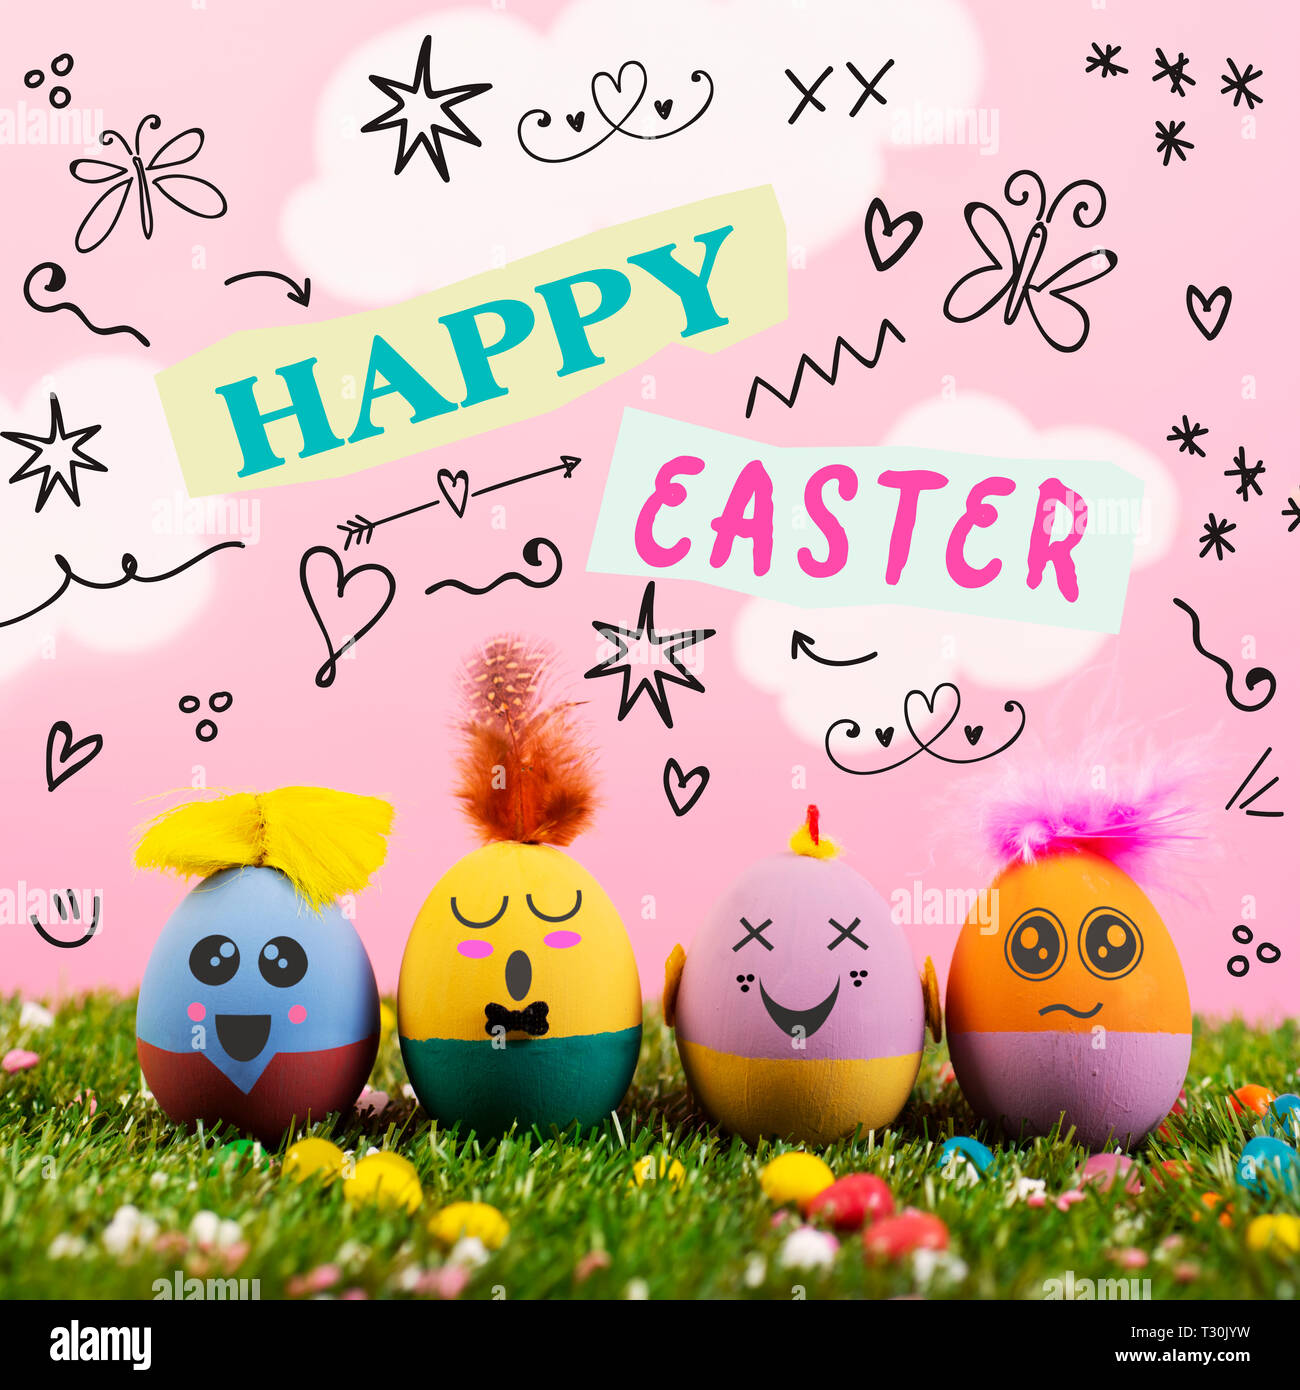 text happy easter, as paper cutouts, and some handmade easter eggs, with cute and funny faces, on the grass with a pink sky with white clouds in the b Stock Photo